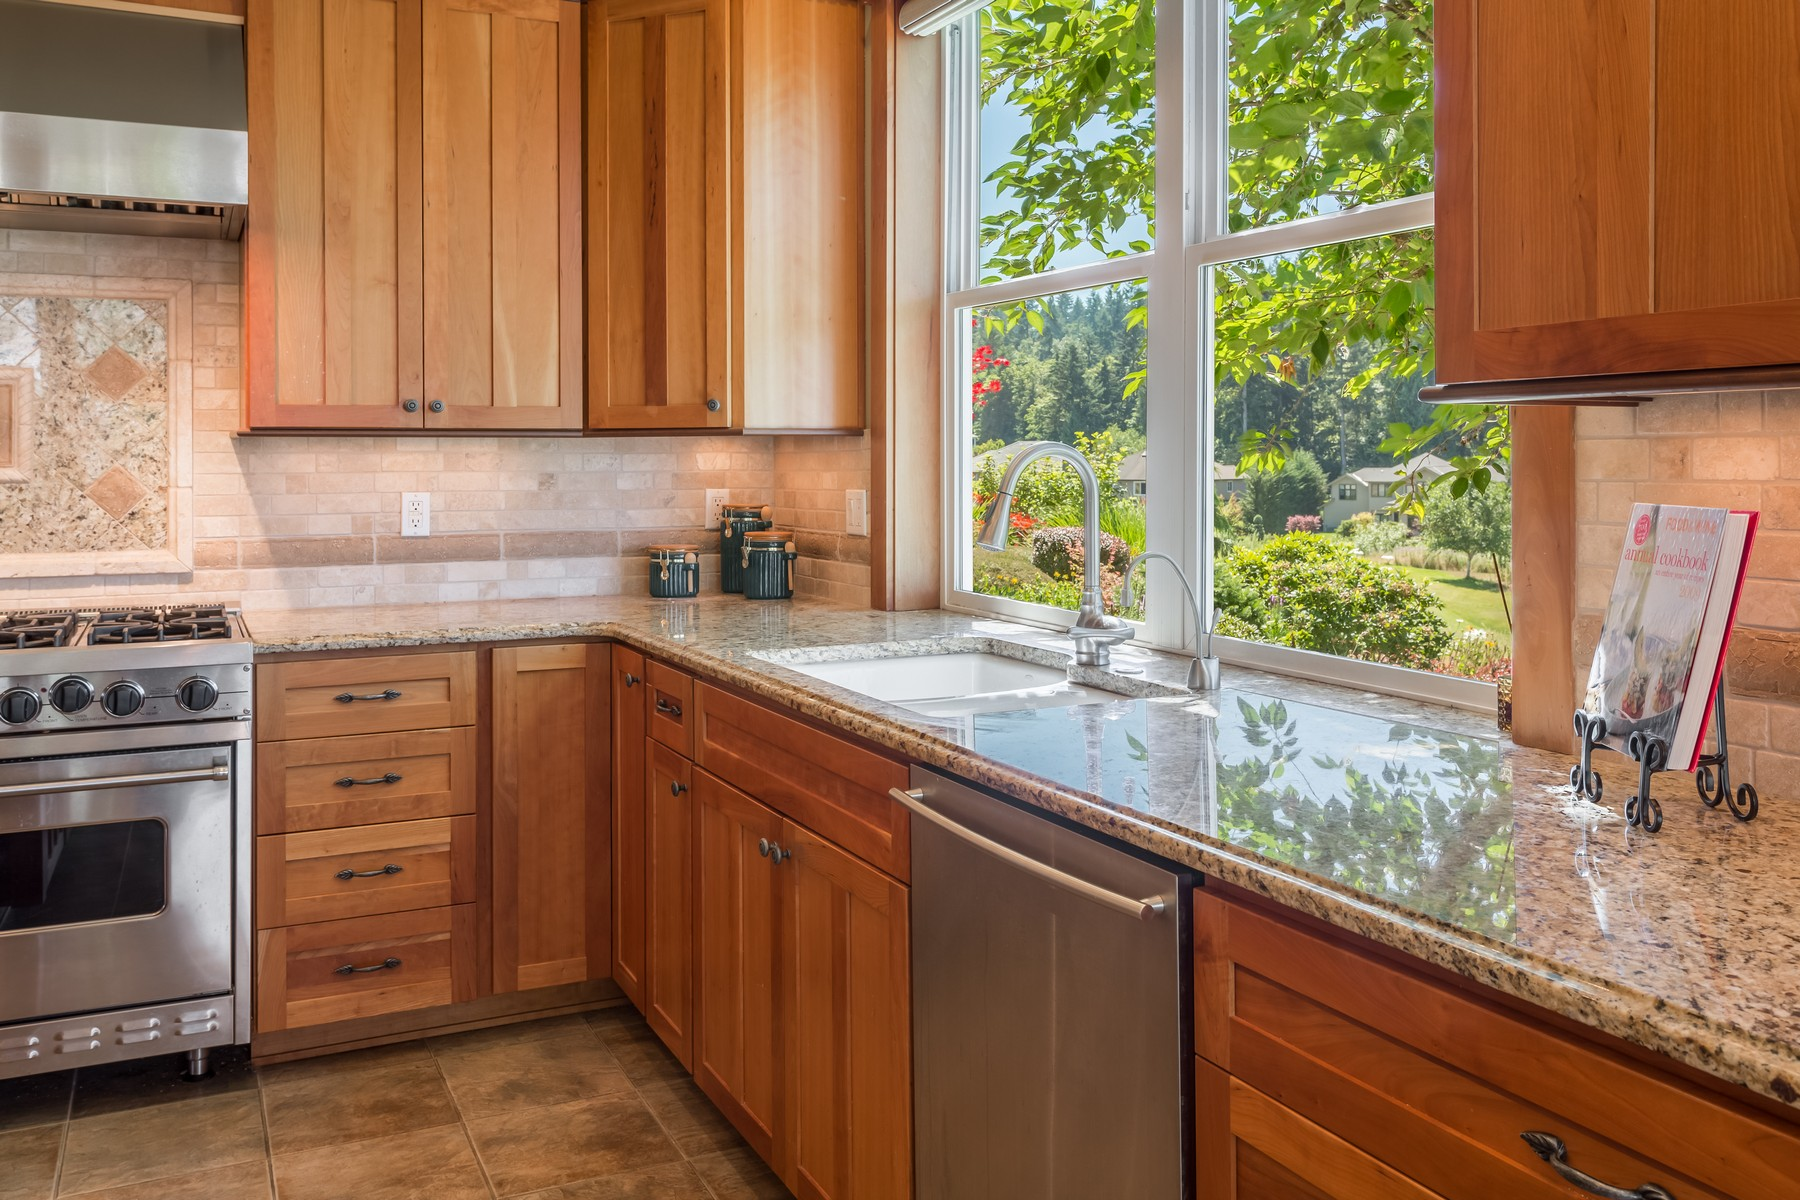 Additional photo for property listing at Newcastle Craftsman 15131 SE 80th St Newcastle, Washington 98059 United States